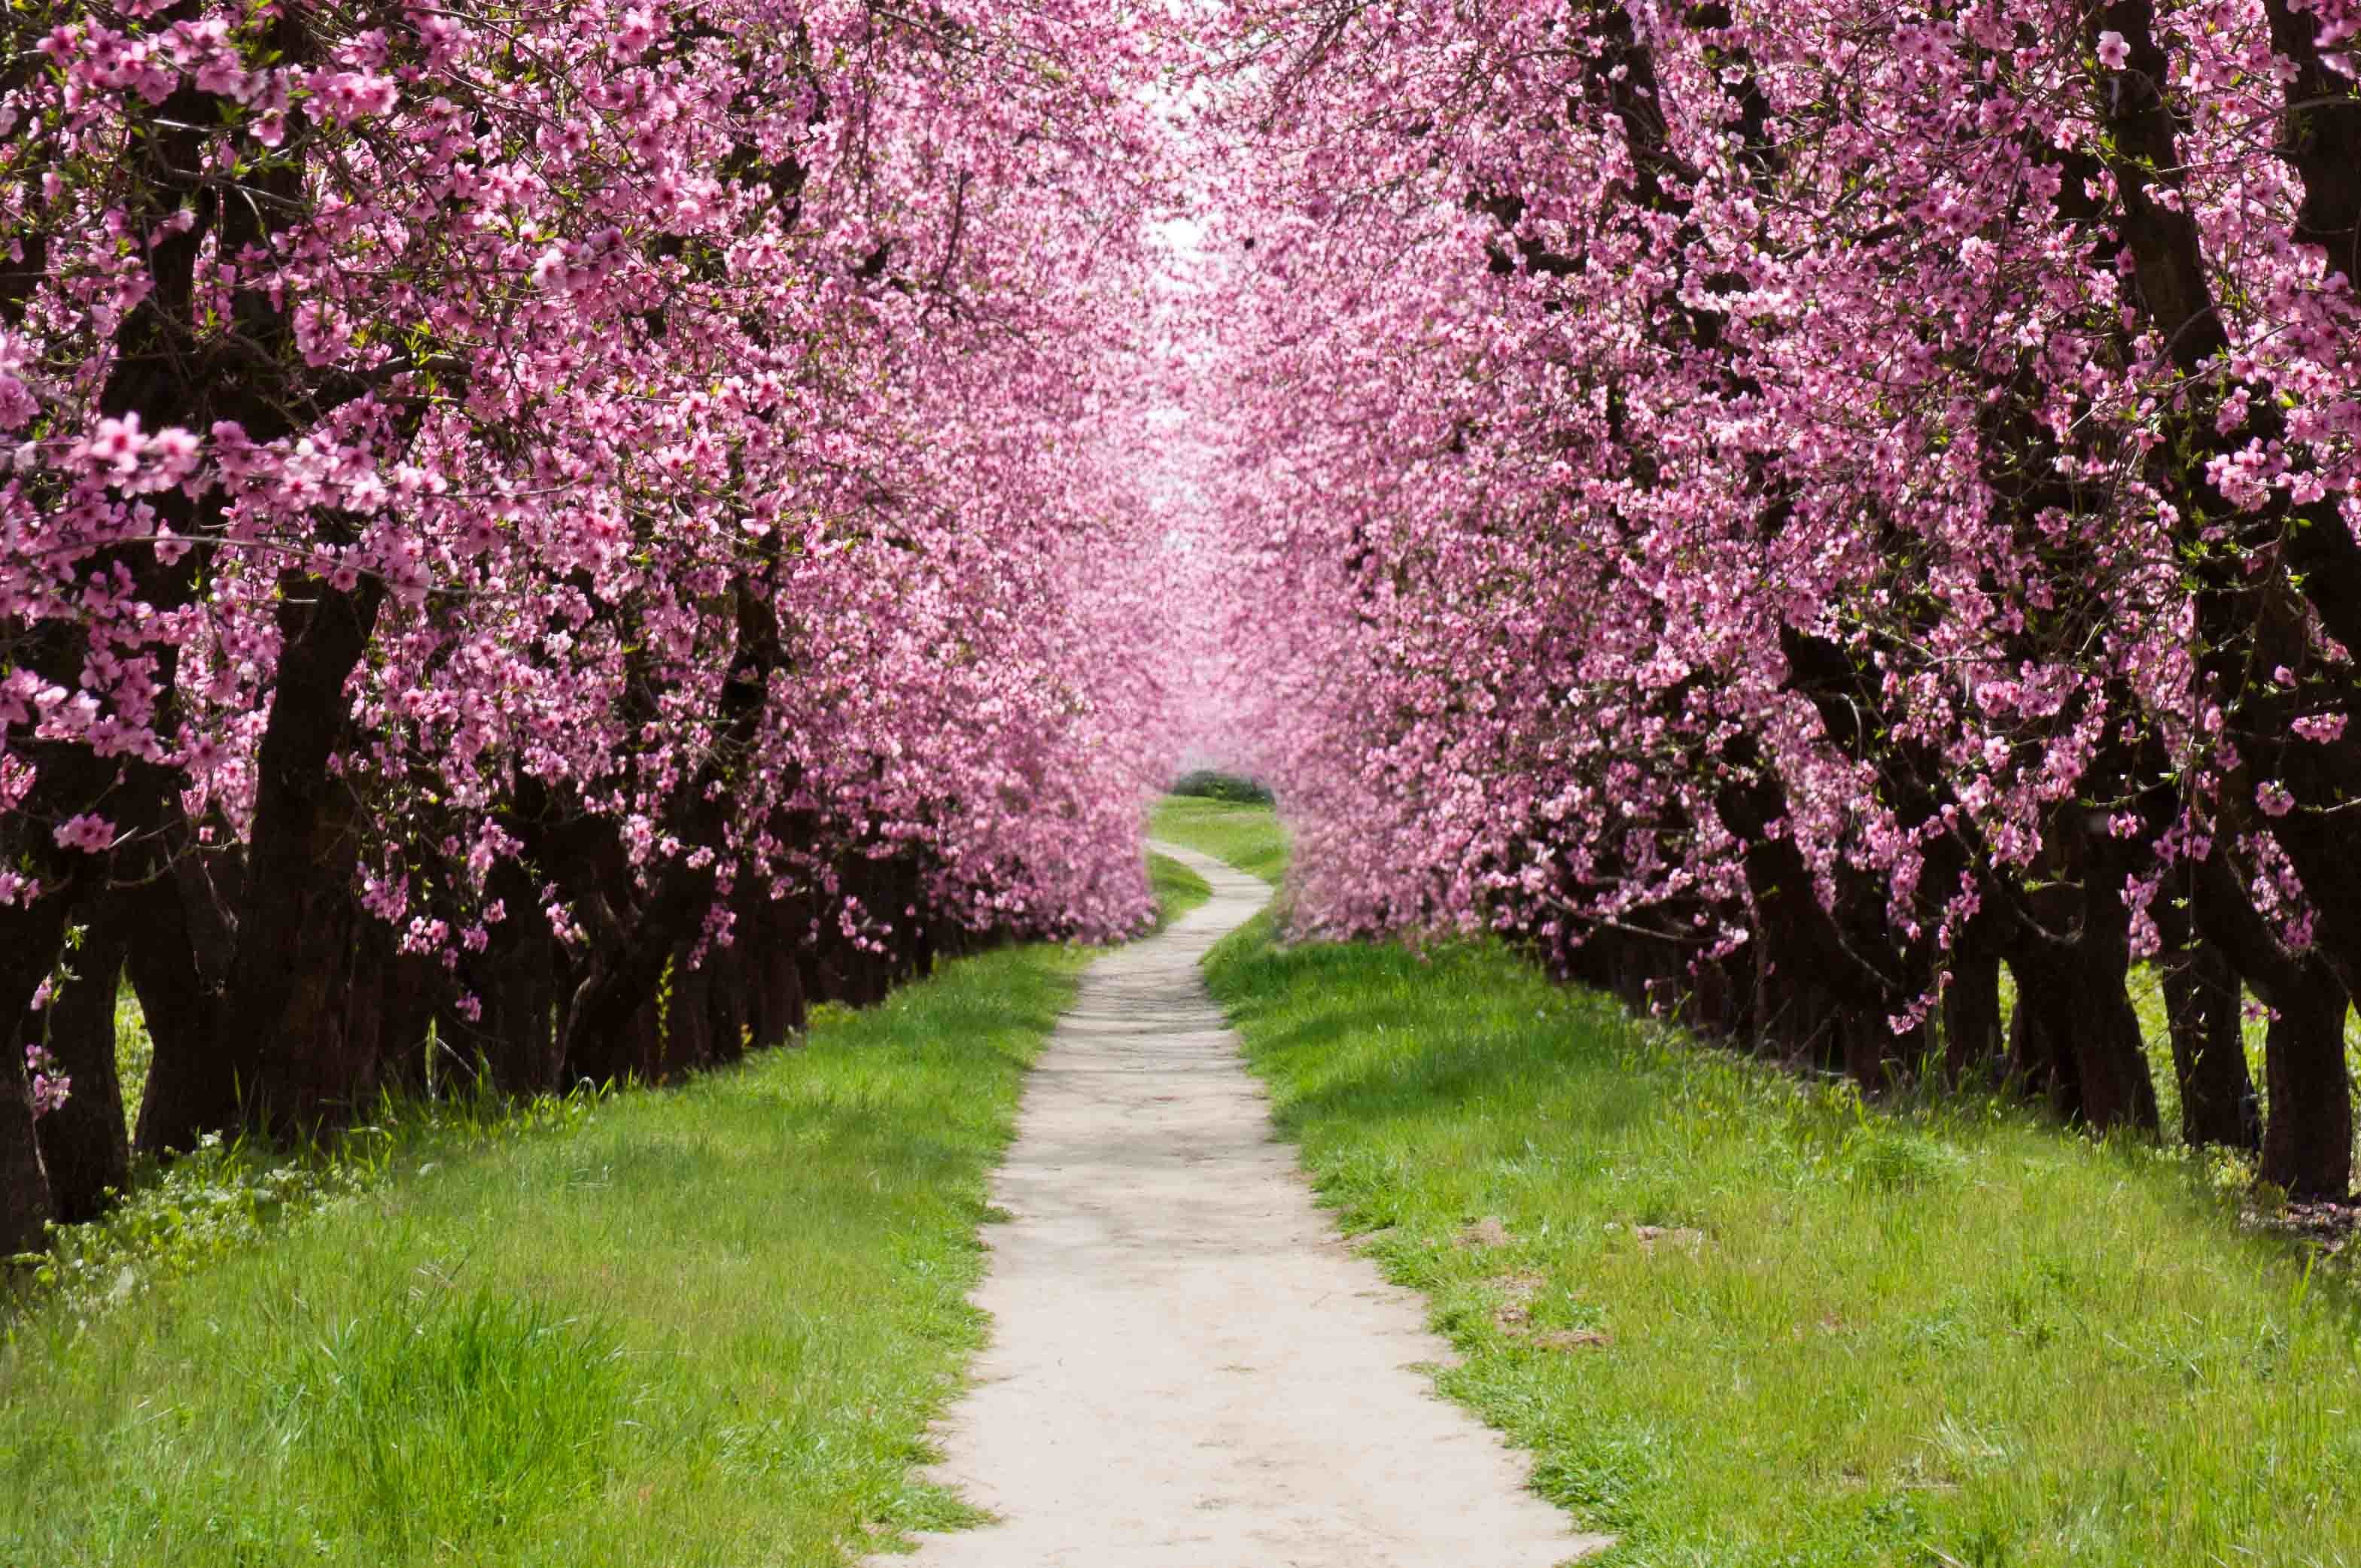 Within my imagination is a rich place filled with great halls made of  blooming cherry trees